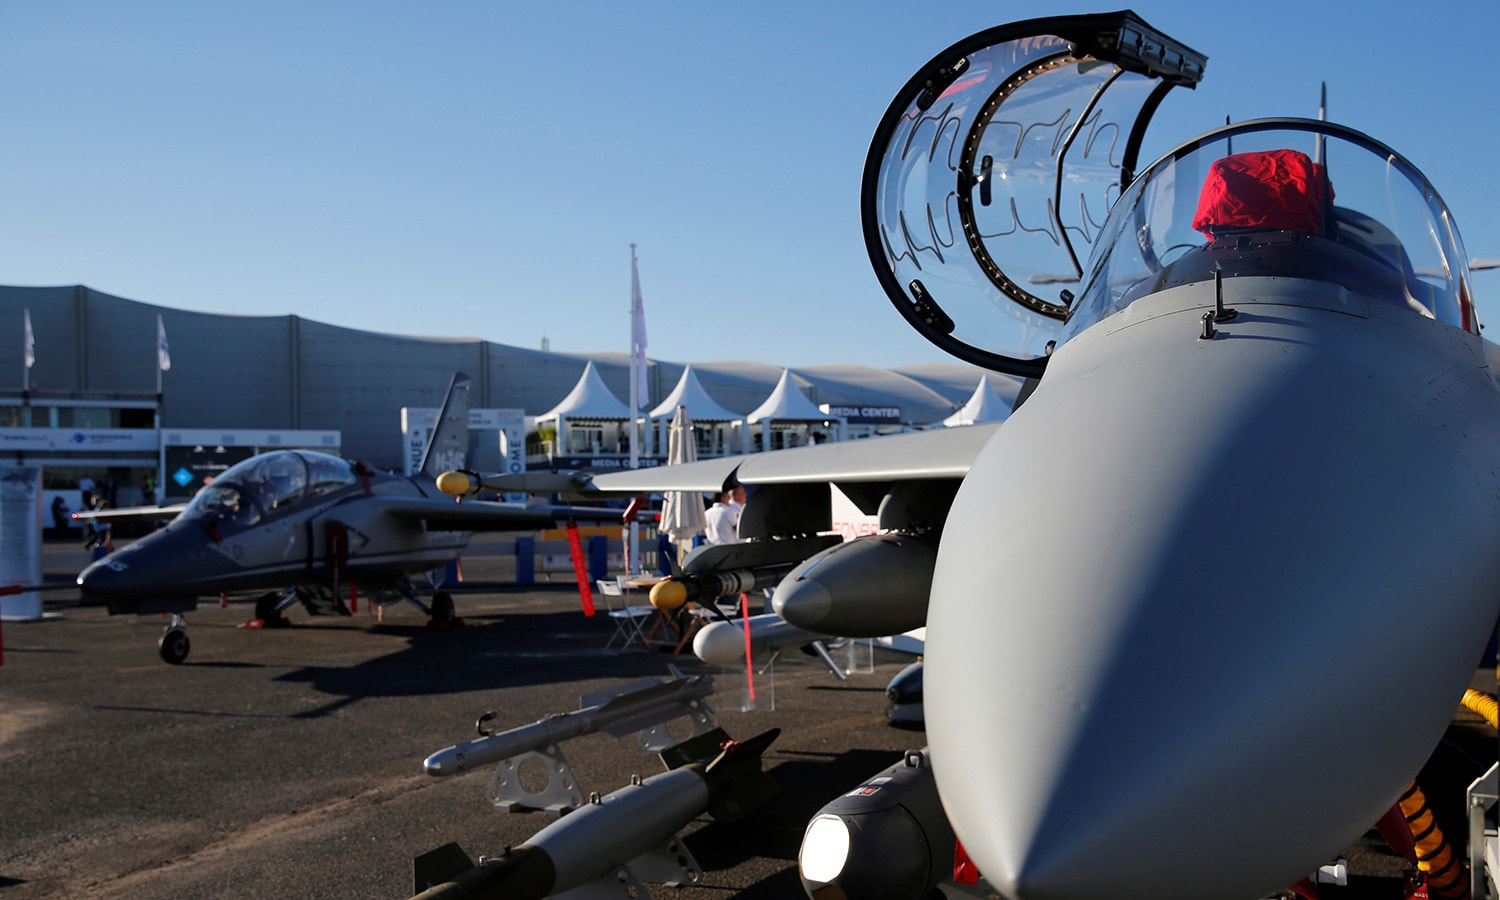 A Leonardo M-346FA fighter attack aircraft is seen on static display. ─ Reuters